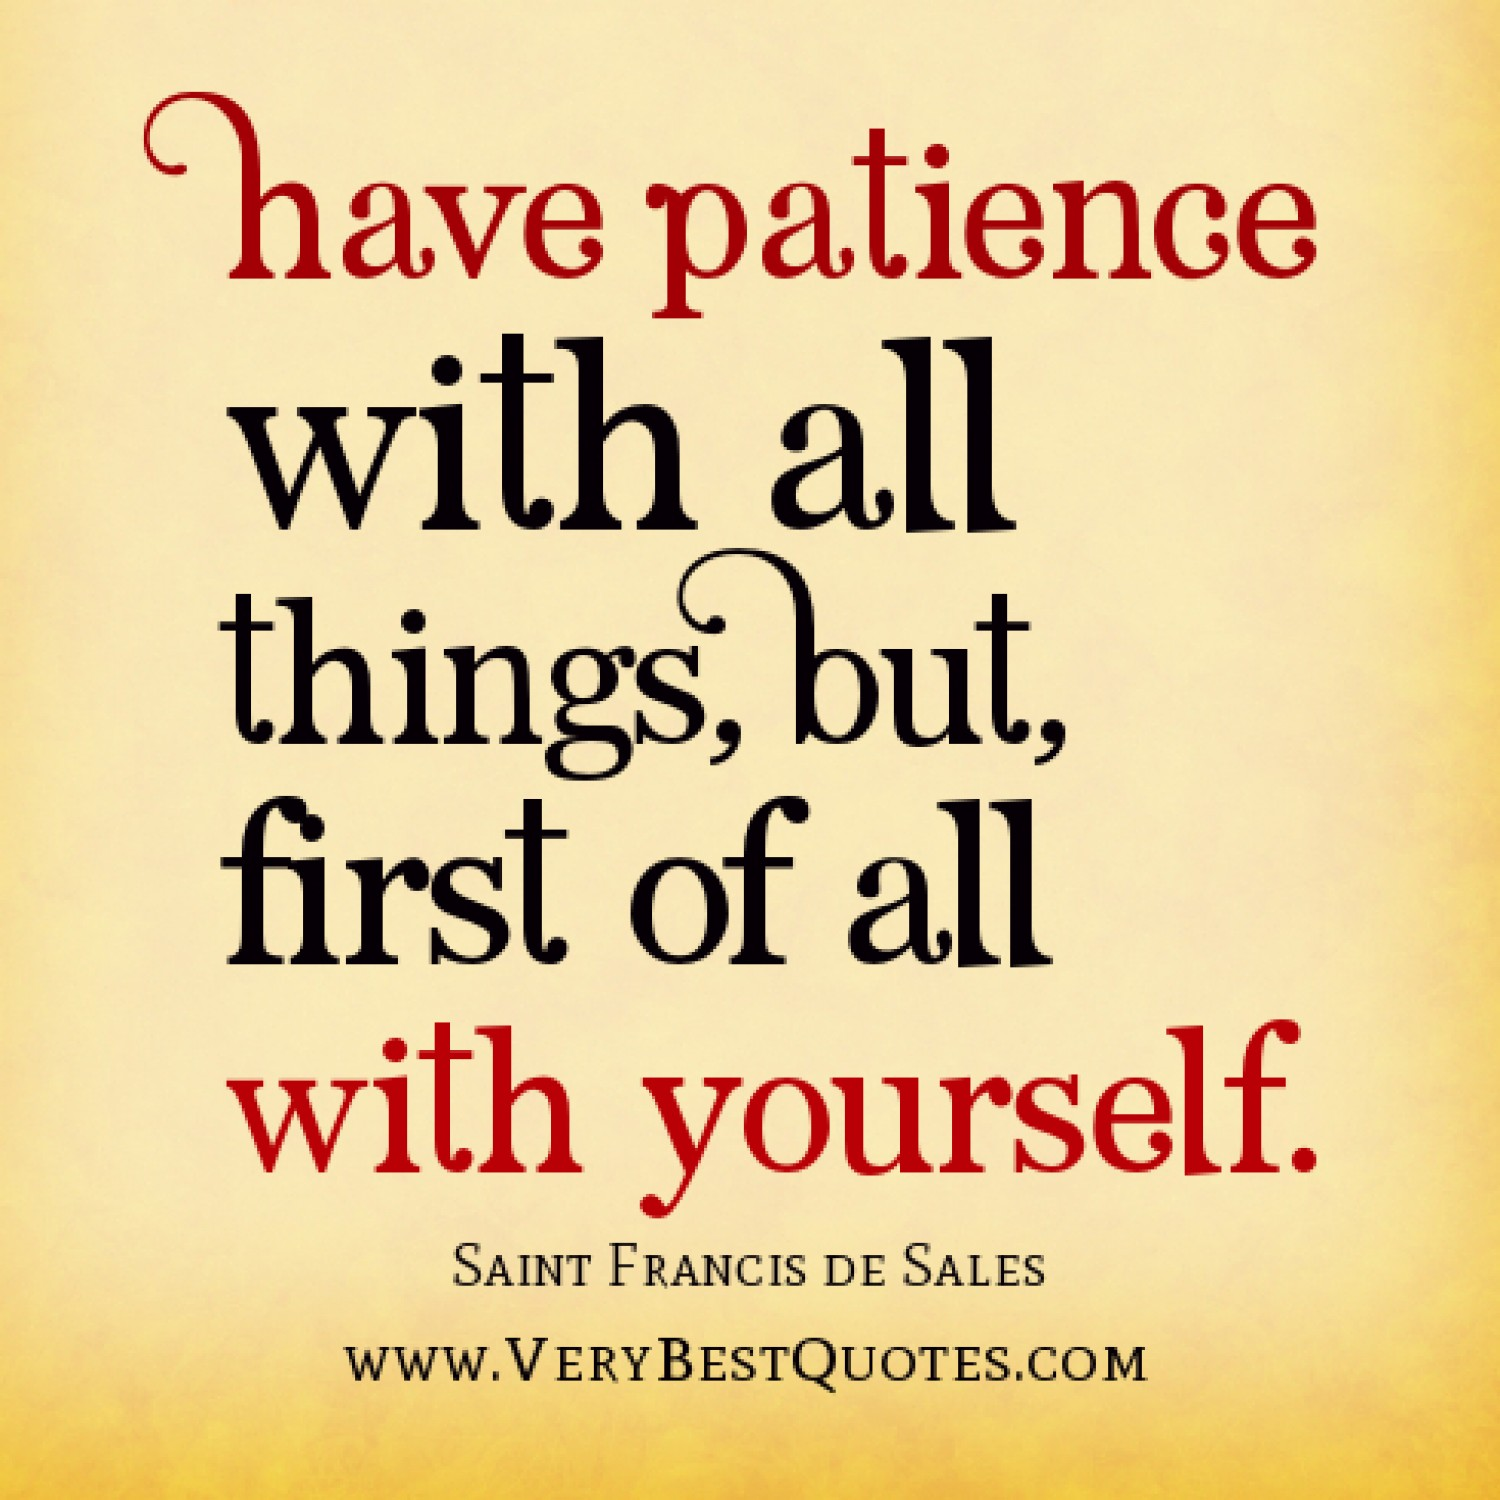 Best Sales Quotes 61 Best Patience Quotes & Sayings